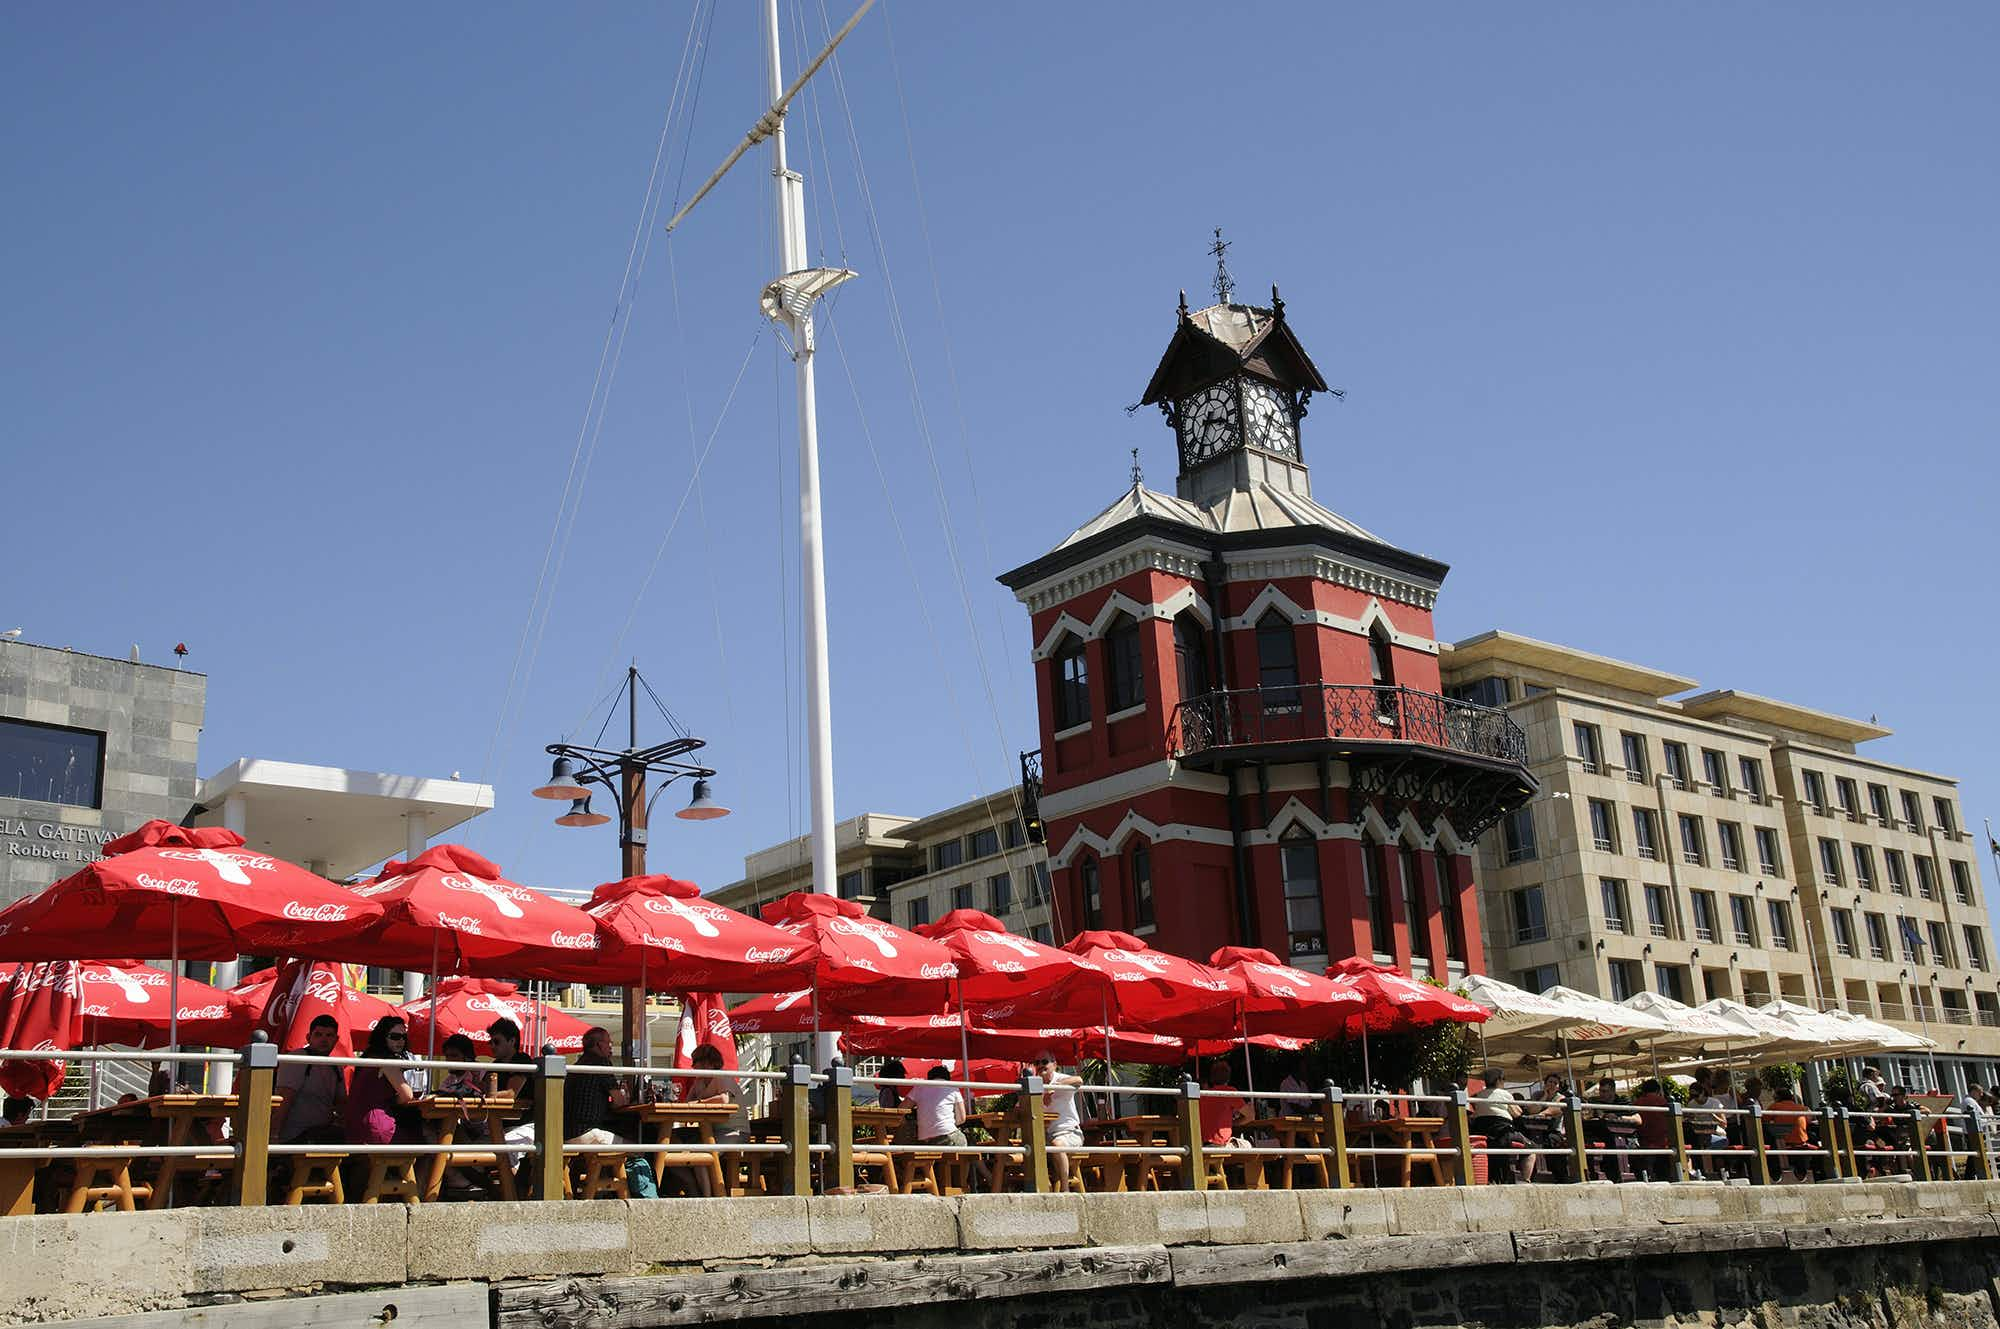 Downloadable audio tours unveiled at Cape Town's V&A Waterfront